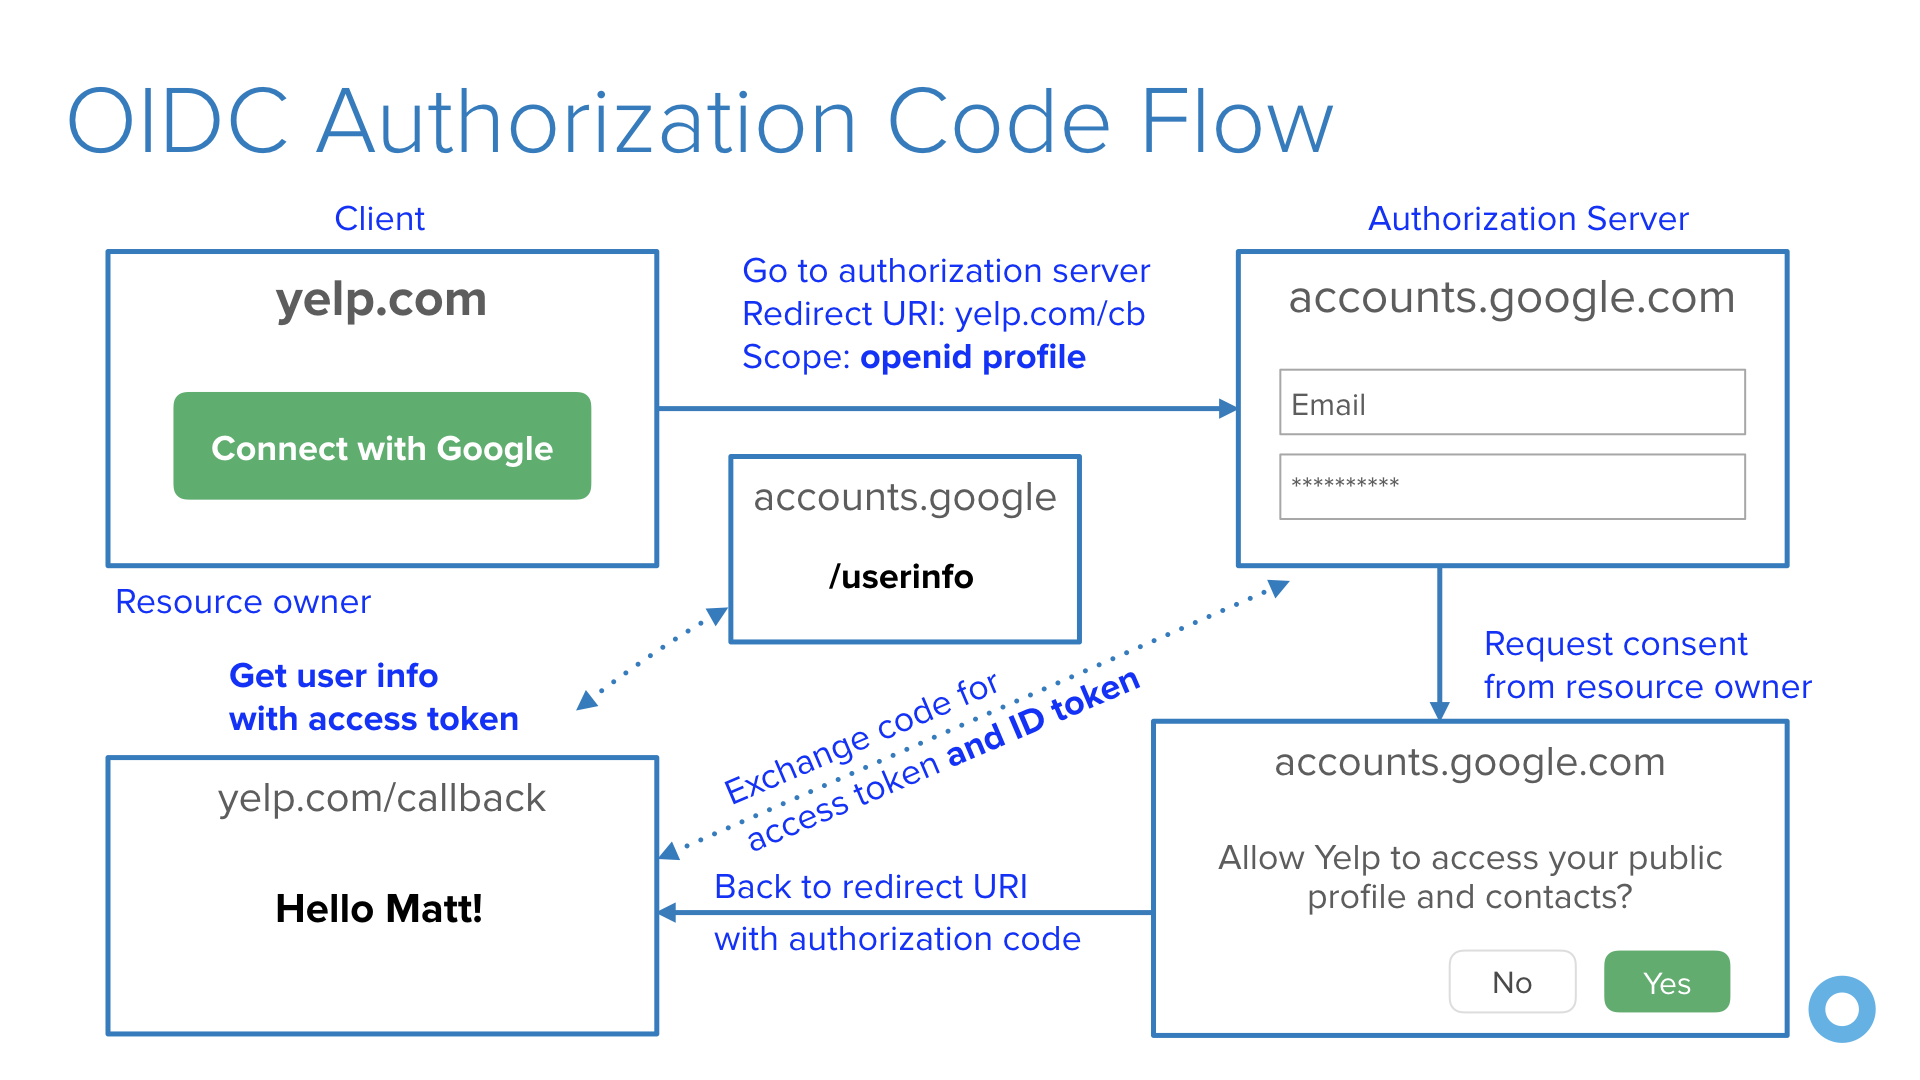 OIDC Authorization Code Flow